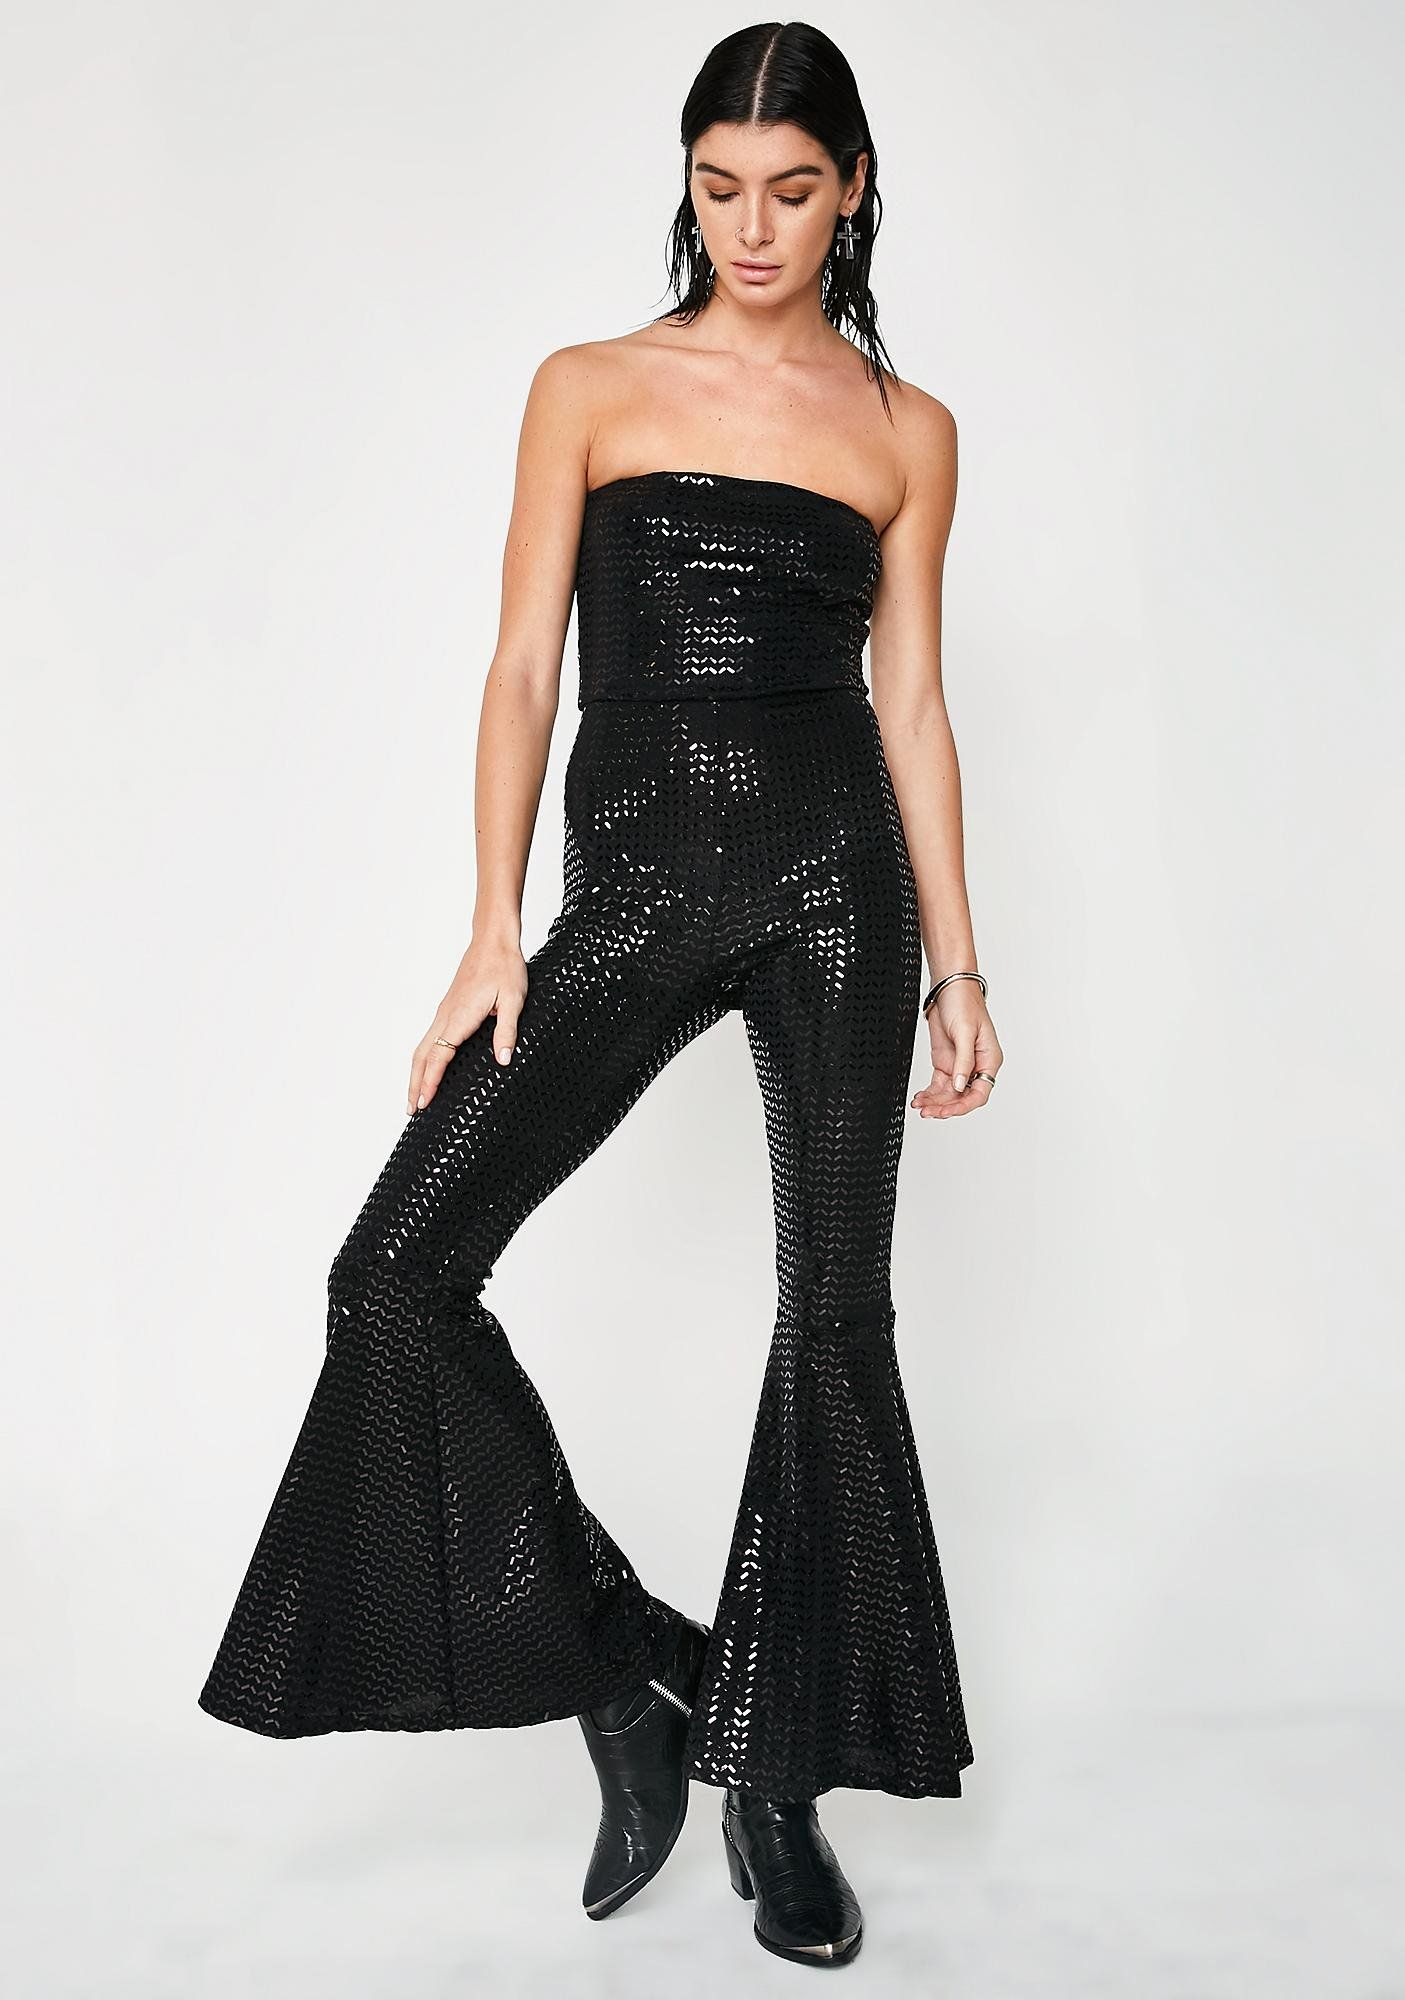 193b7d933d Boogie Fever Bell Bottom Jumpsuit got ya groovin  all night long. This  sparkly black sequin jumpsuit has a strapless neckline and flowy flared  legs.